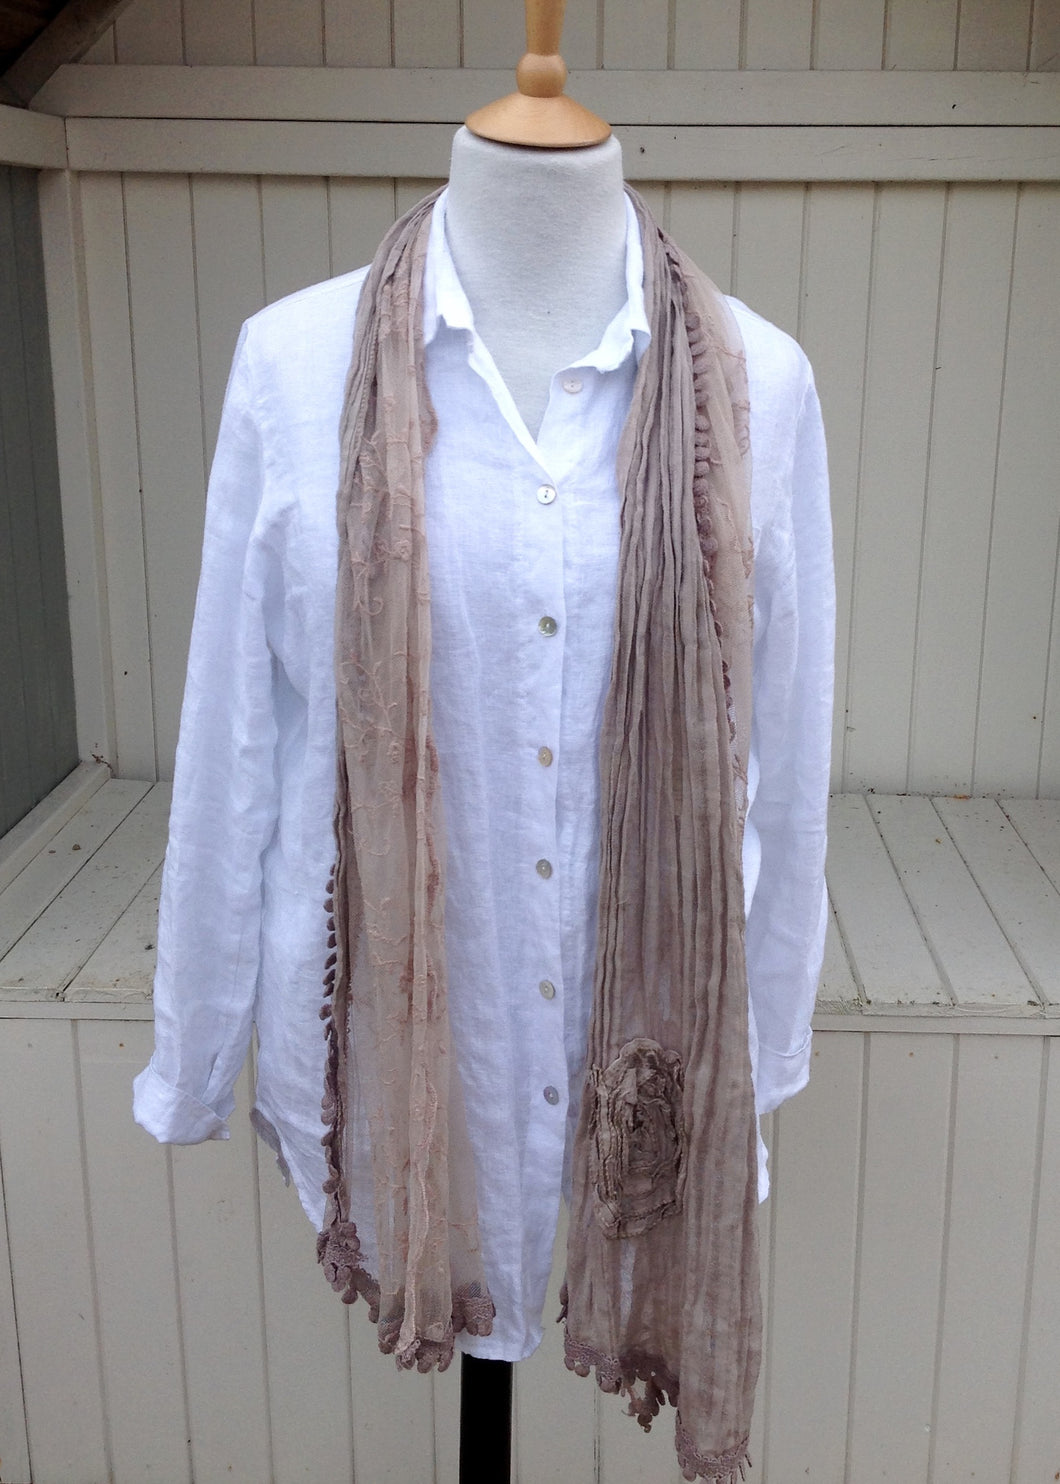 Bettola Scarf in Mocha - Feathers Of Italy